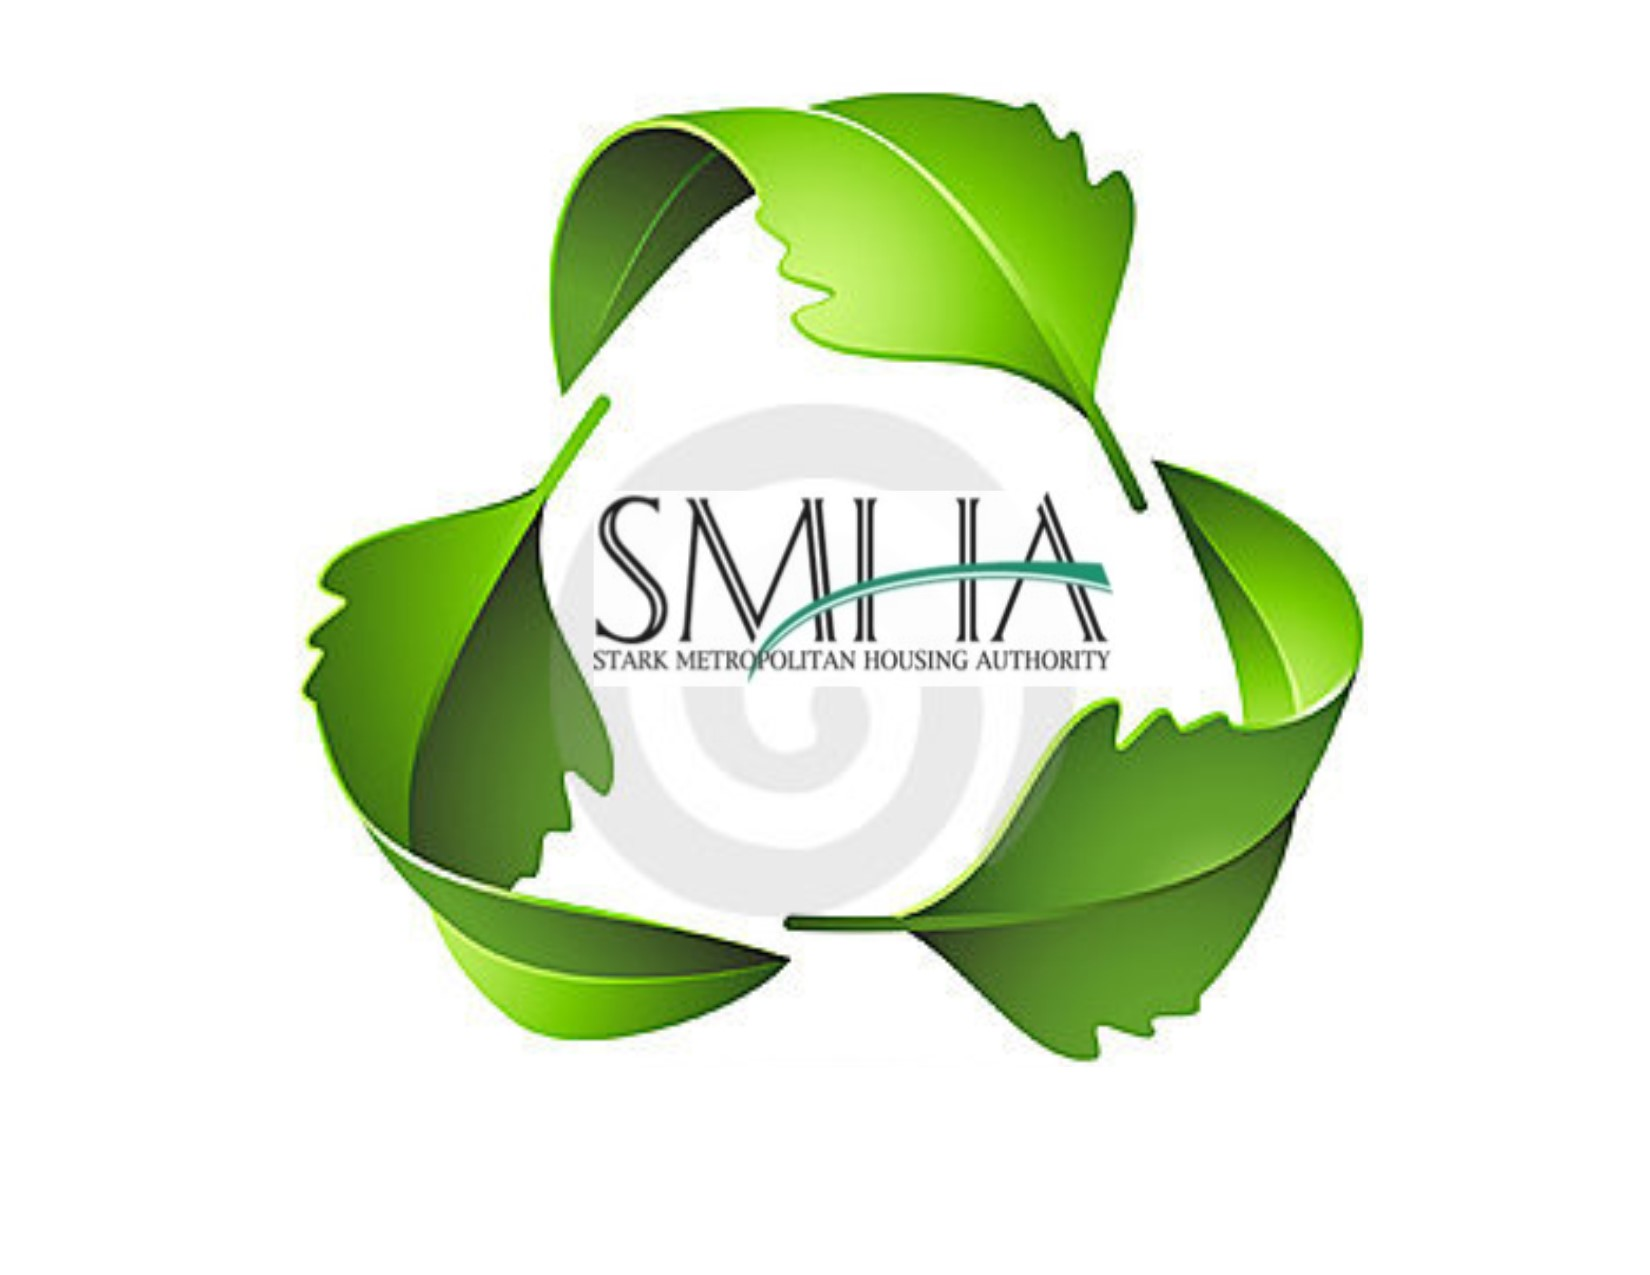 green up clean up - stark metropolitan housing authority (smha)